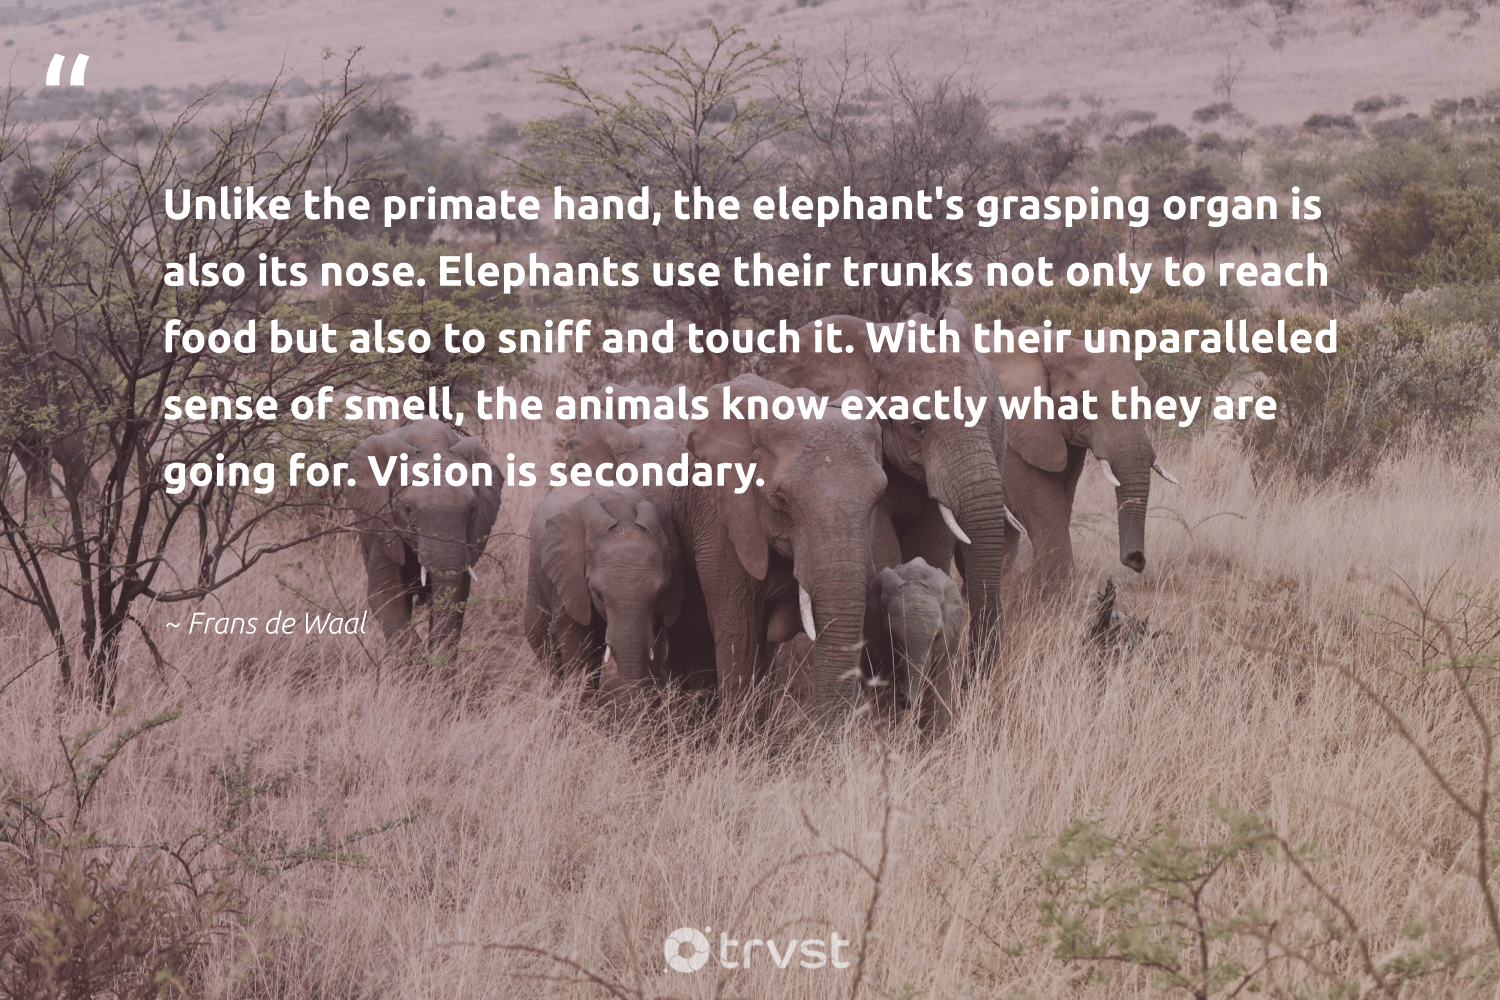 """""""Unlike the primate hand, the elephant's grasping organ is also its nose. Elephants use their trunks not only to reach food but also to sniff and touch it. With their unparalleled sense of smell, the animals know exactly what they are going for. Vision is secondary.""""  - Frans de Waal #trvst #quotes #animals #food #elephants #animal #naturelovers #nature #bethechange #animallovers #savetheelephants #geology"""